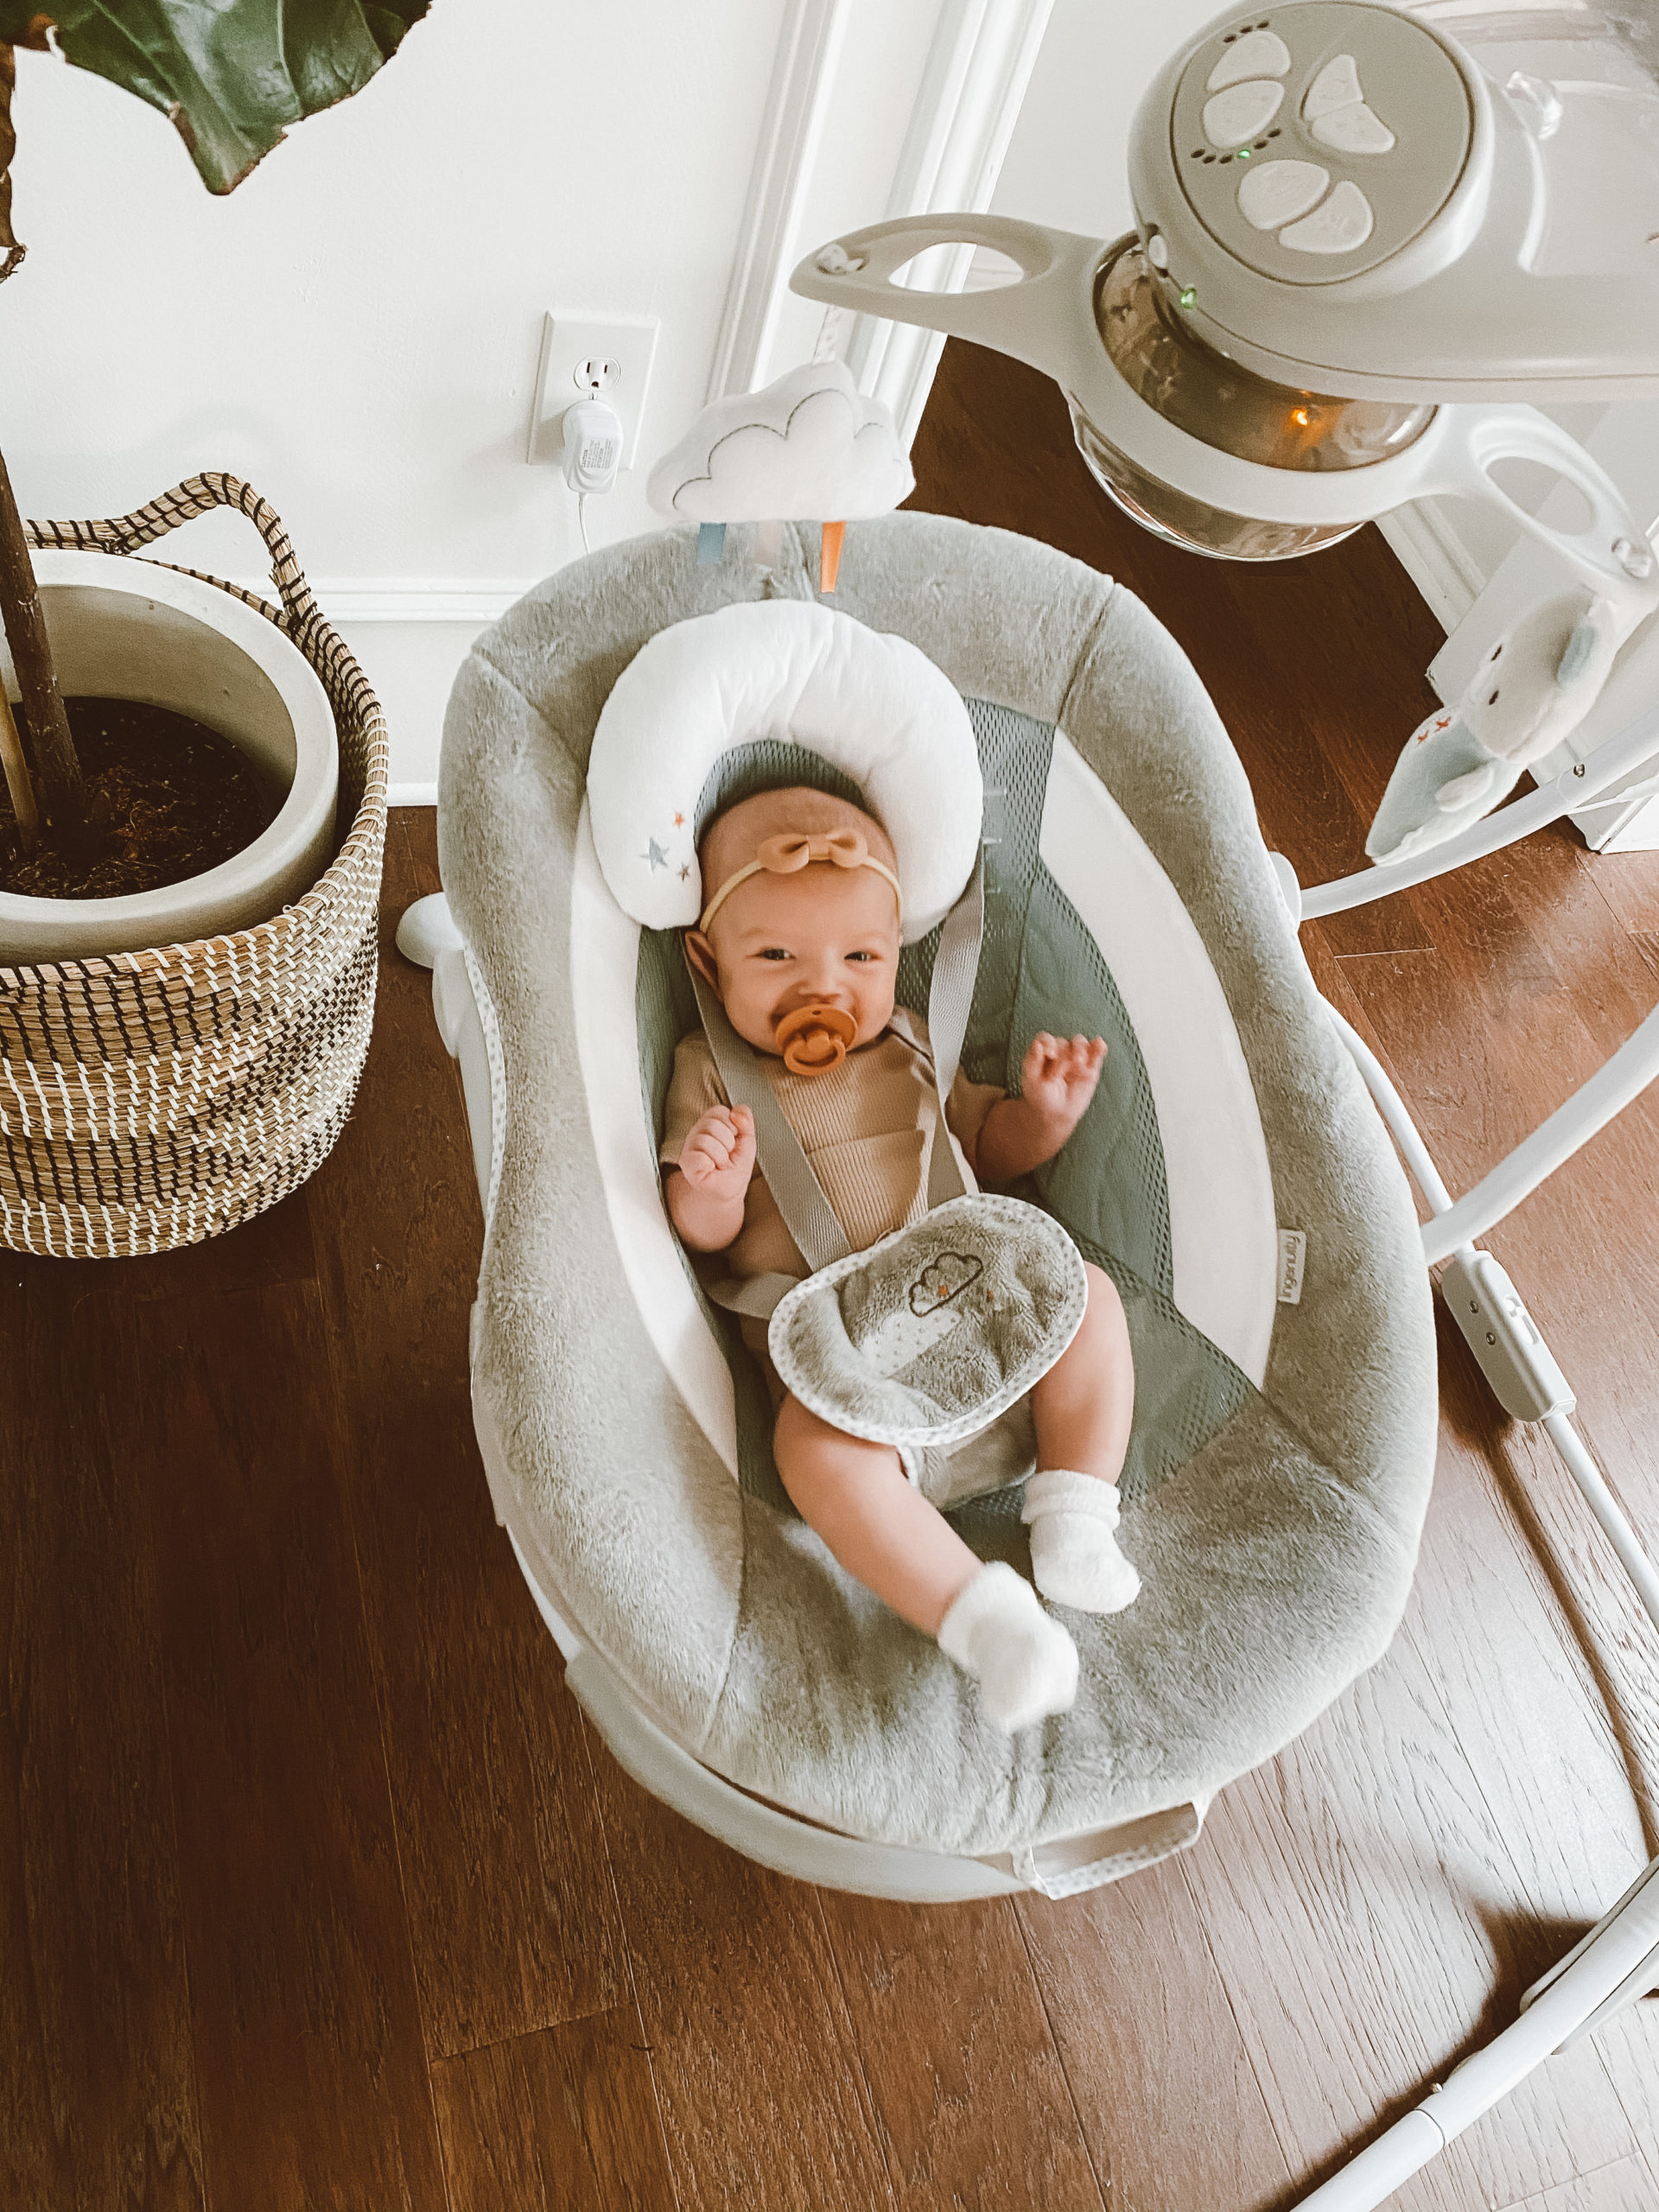 baby swing vs mamaRoo review and comparison